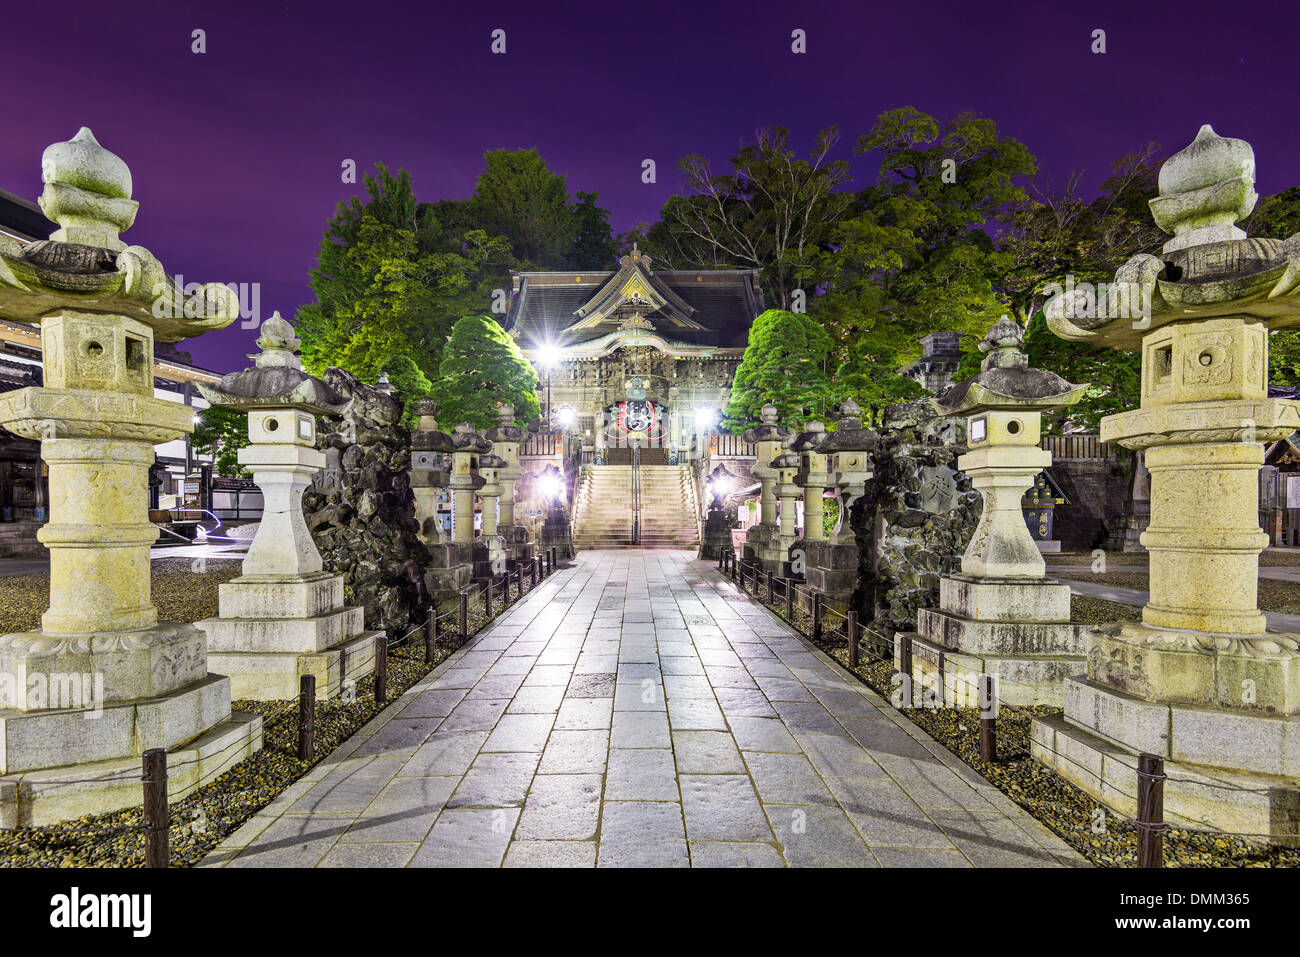 Narita Shrine in Narita, Japan. - Stock Image